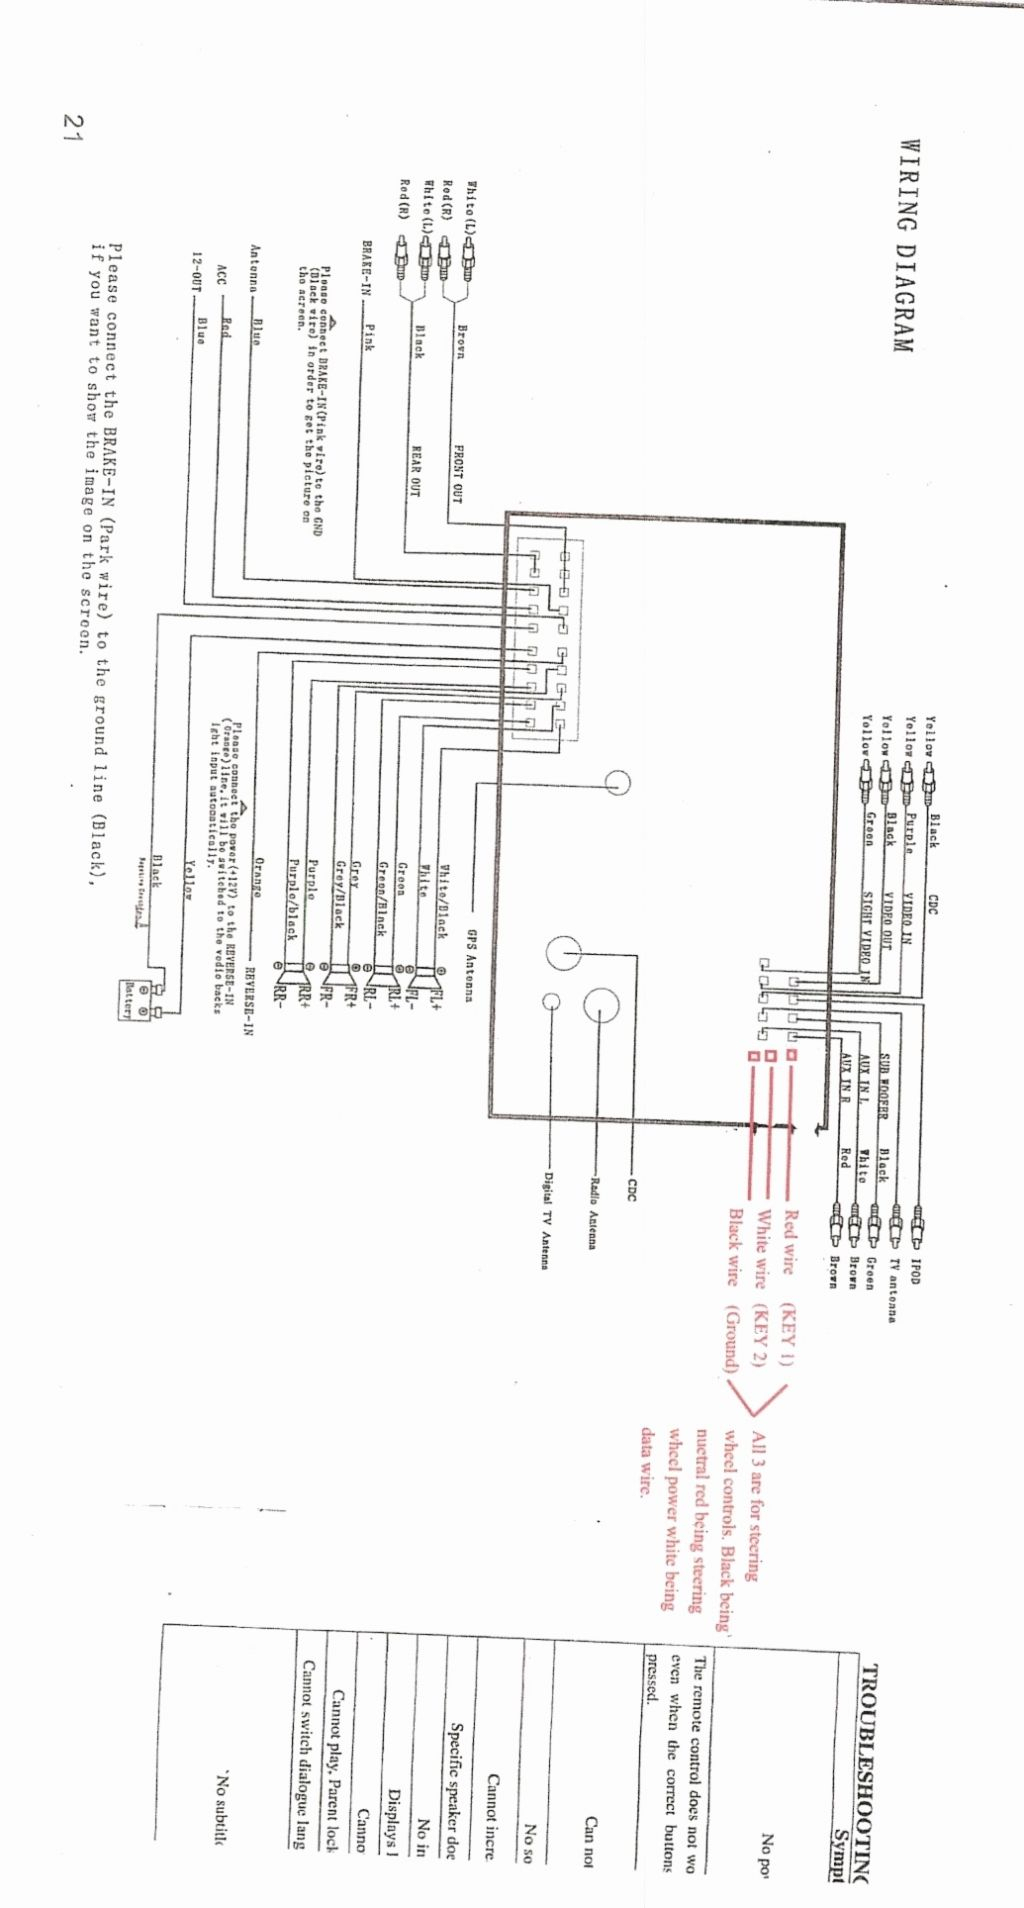 thermostat wiring color wiring diagram